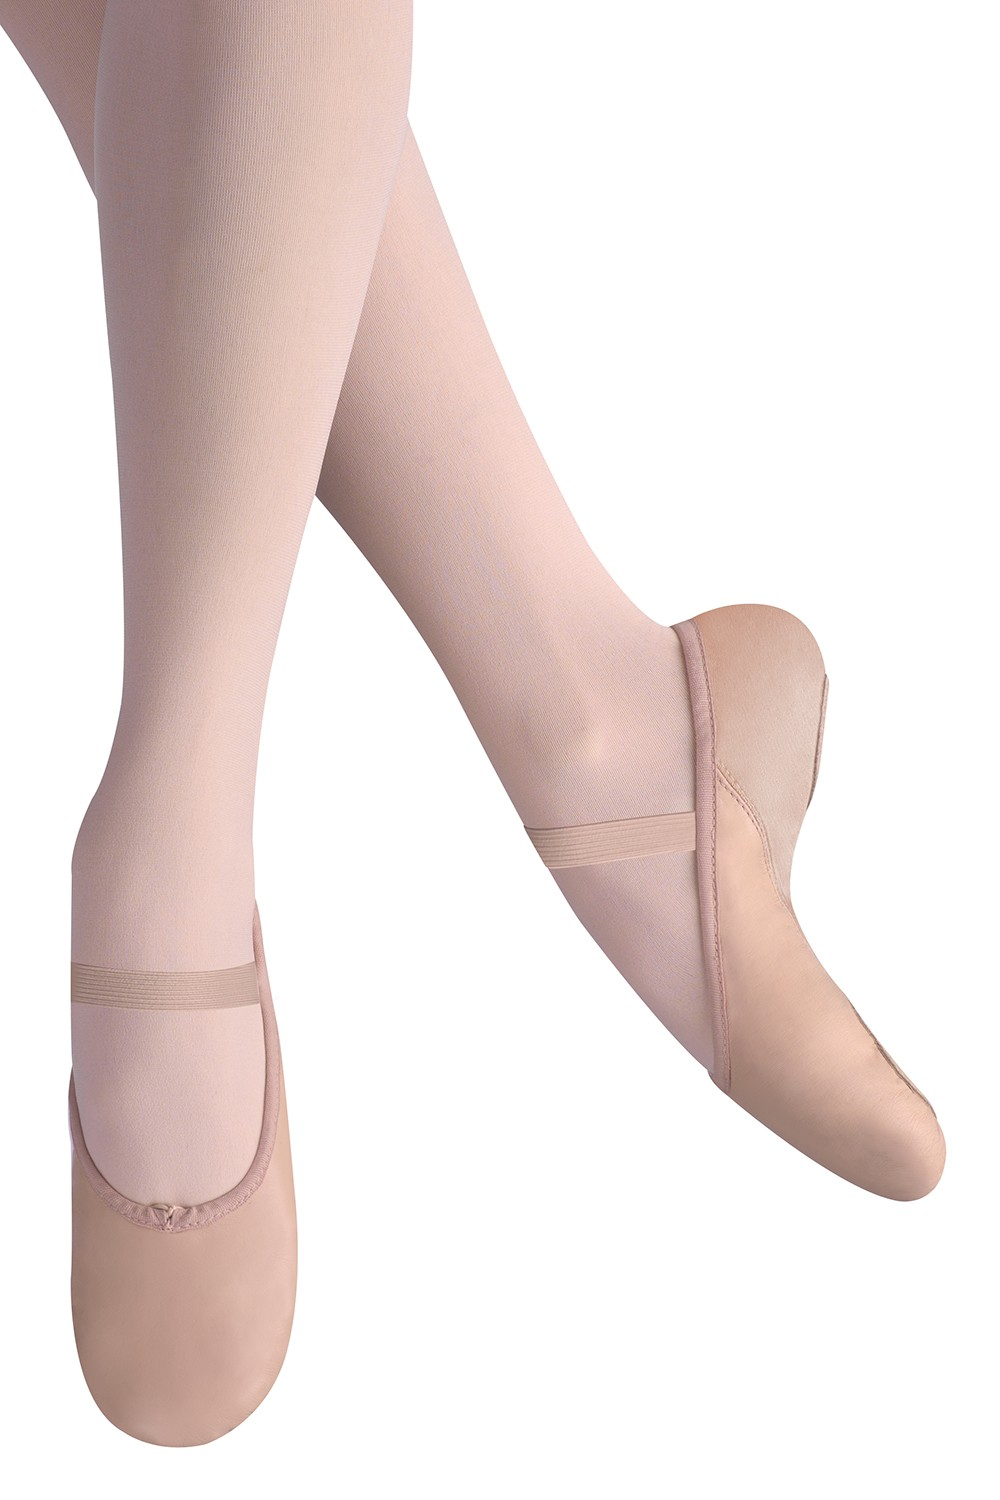 Stretch Split Sole Women's Ballet Shoes